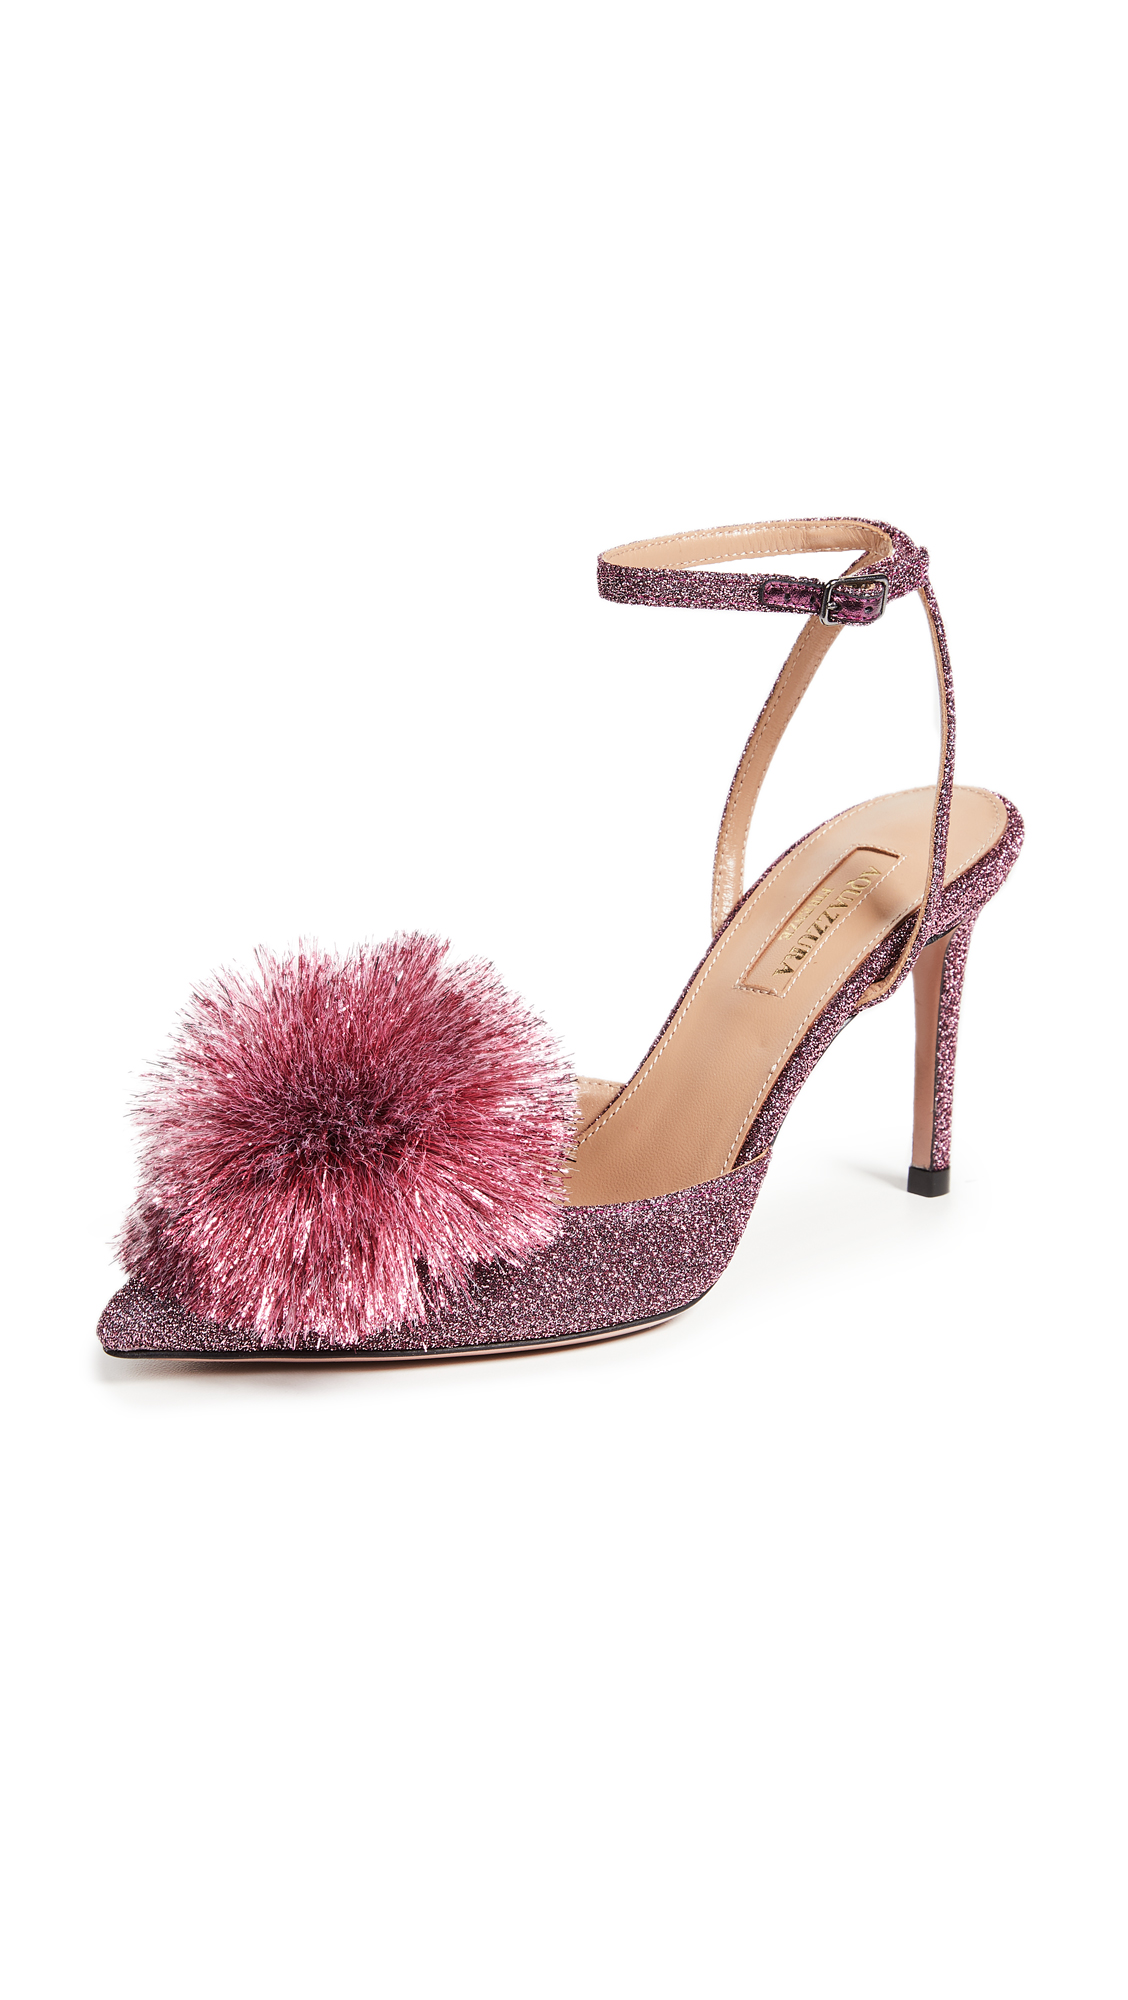 Aquazzura Powder Puff 85mm Sling Pumps - Pink